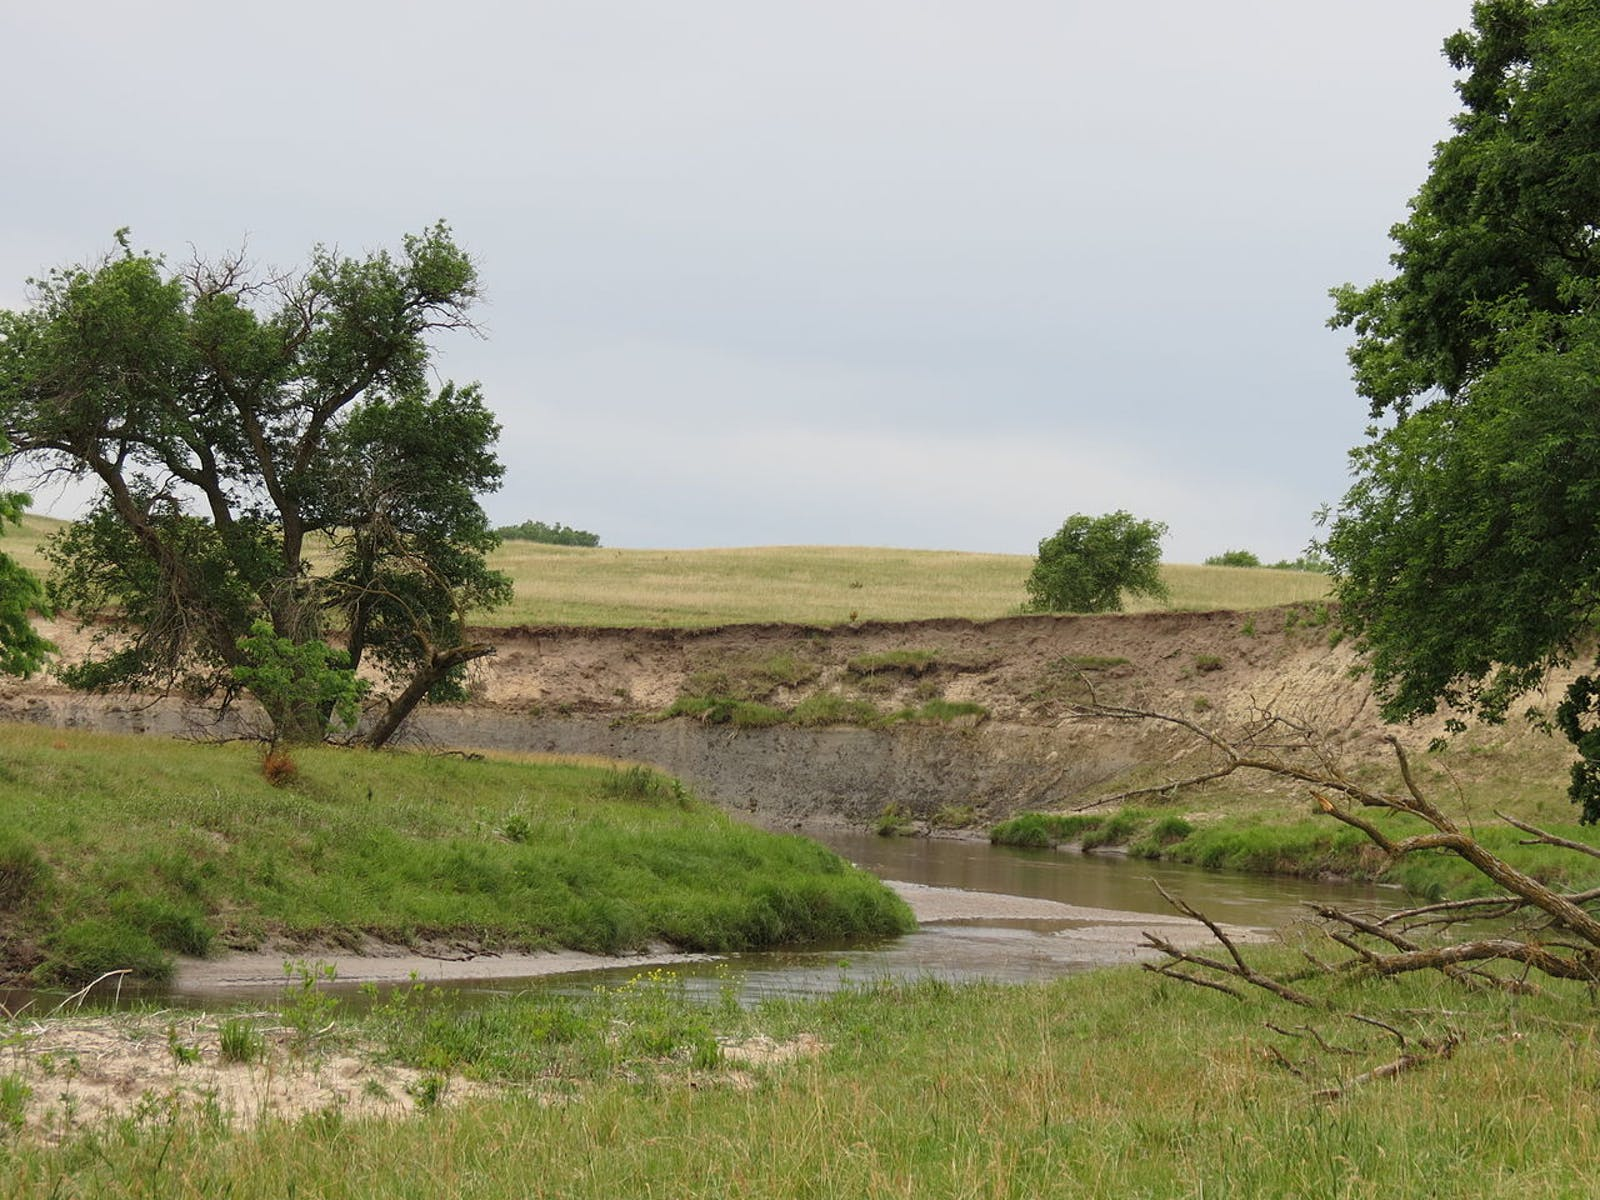 Central-Southern US Mixed Grasslands